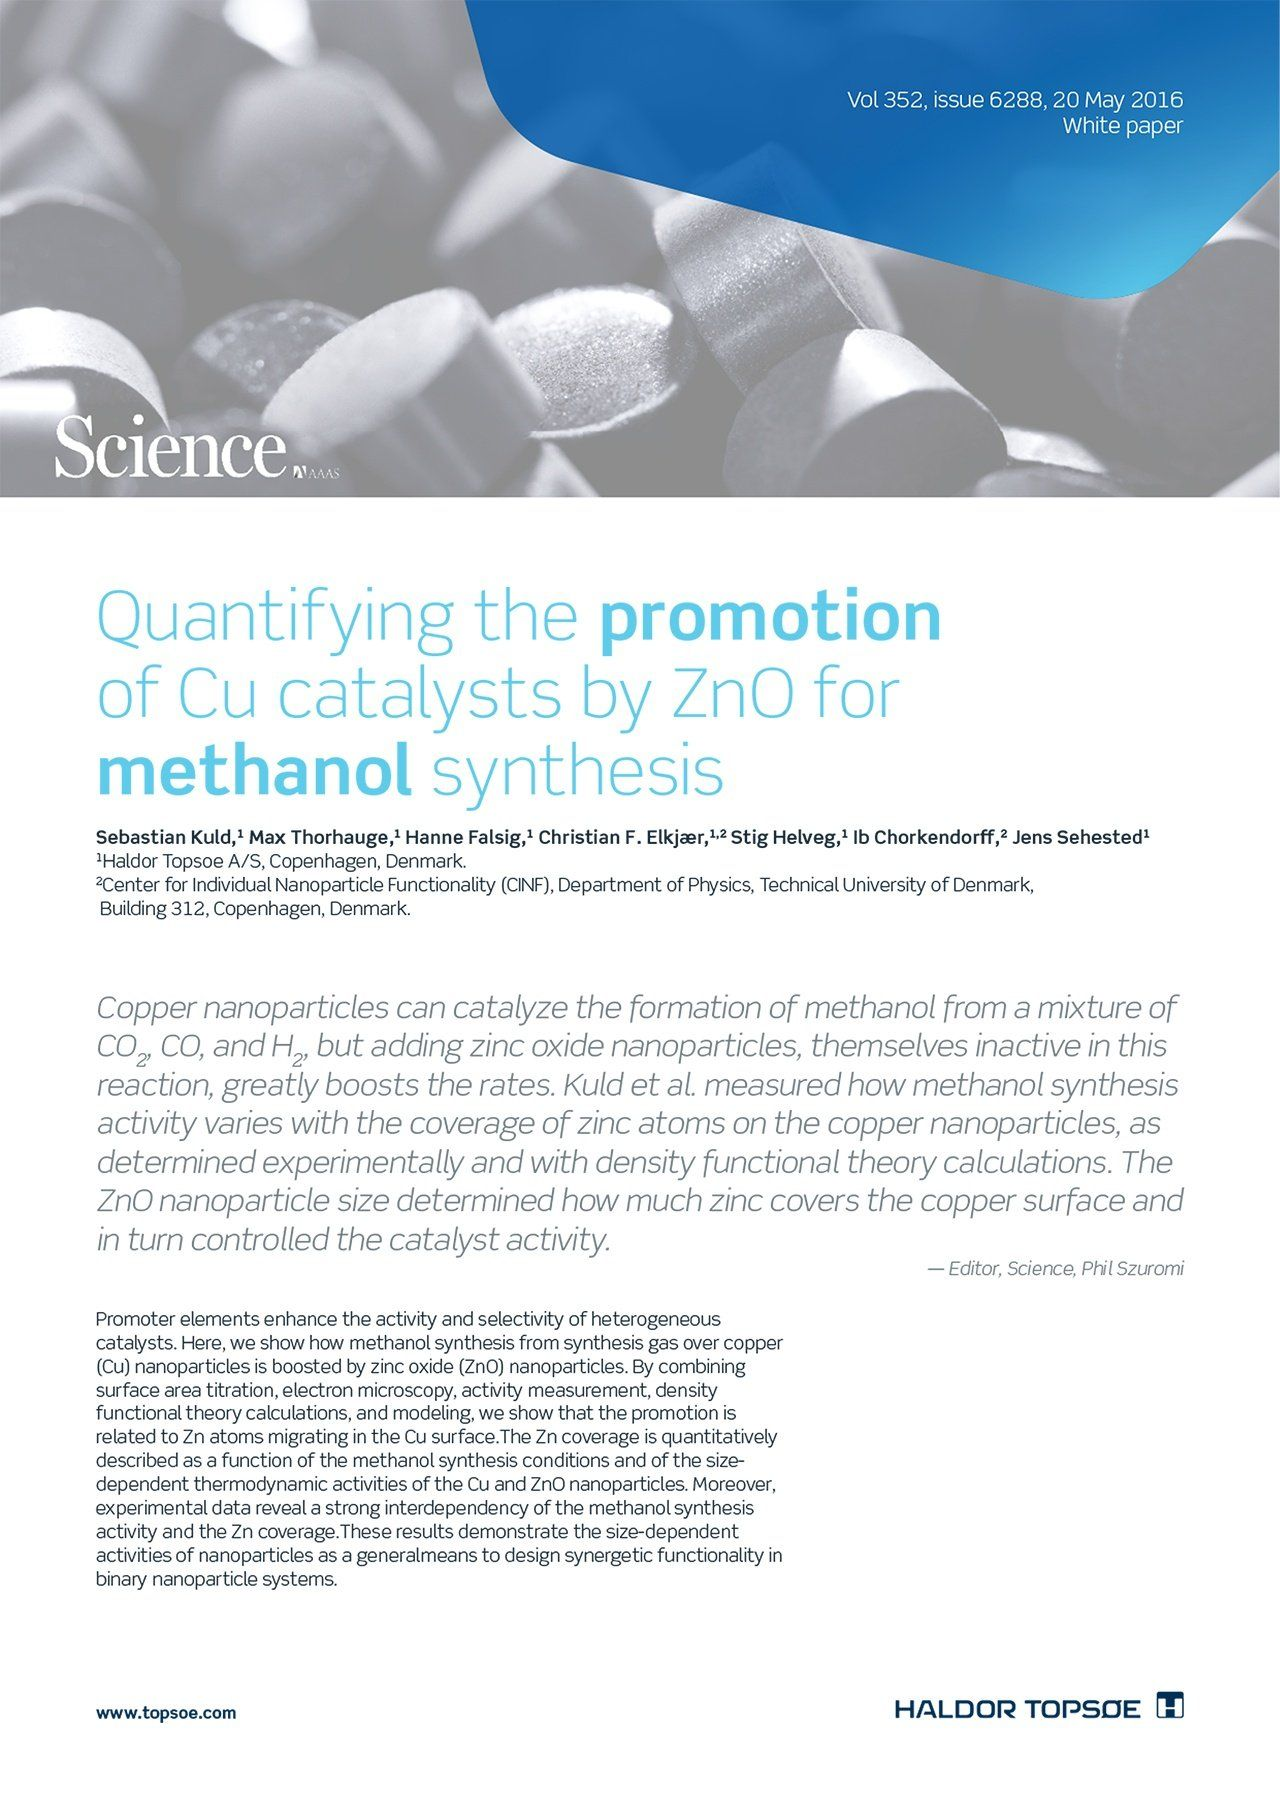 Quantifying the promotion of Cu catalysts by ZnO for methanol synthesis